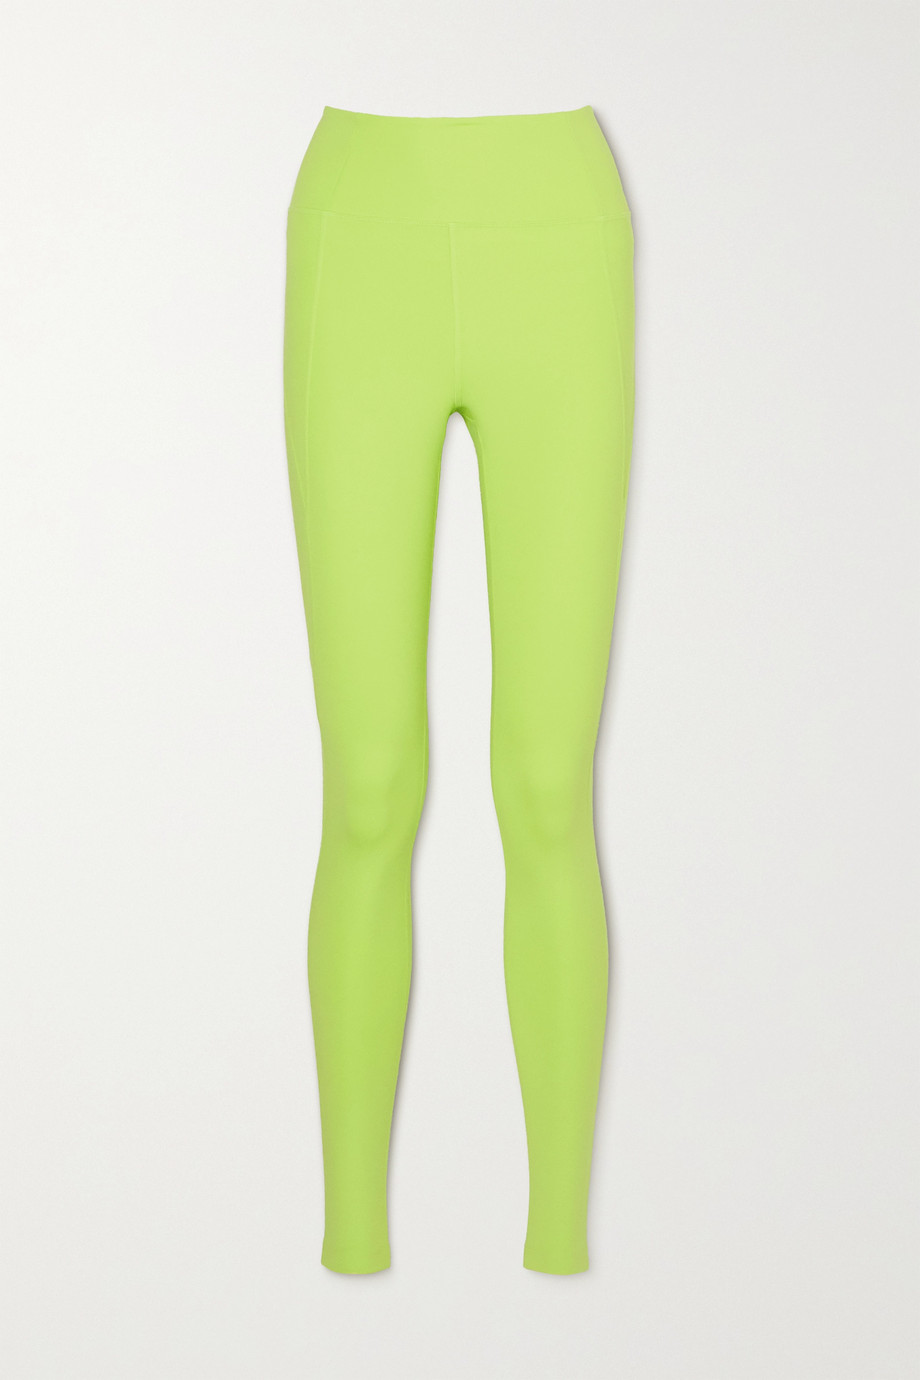 Girlfriend Collective Compressive Stretch-Leggings